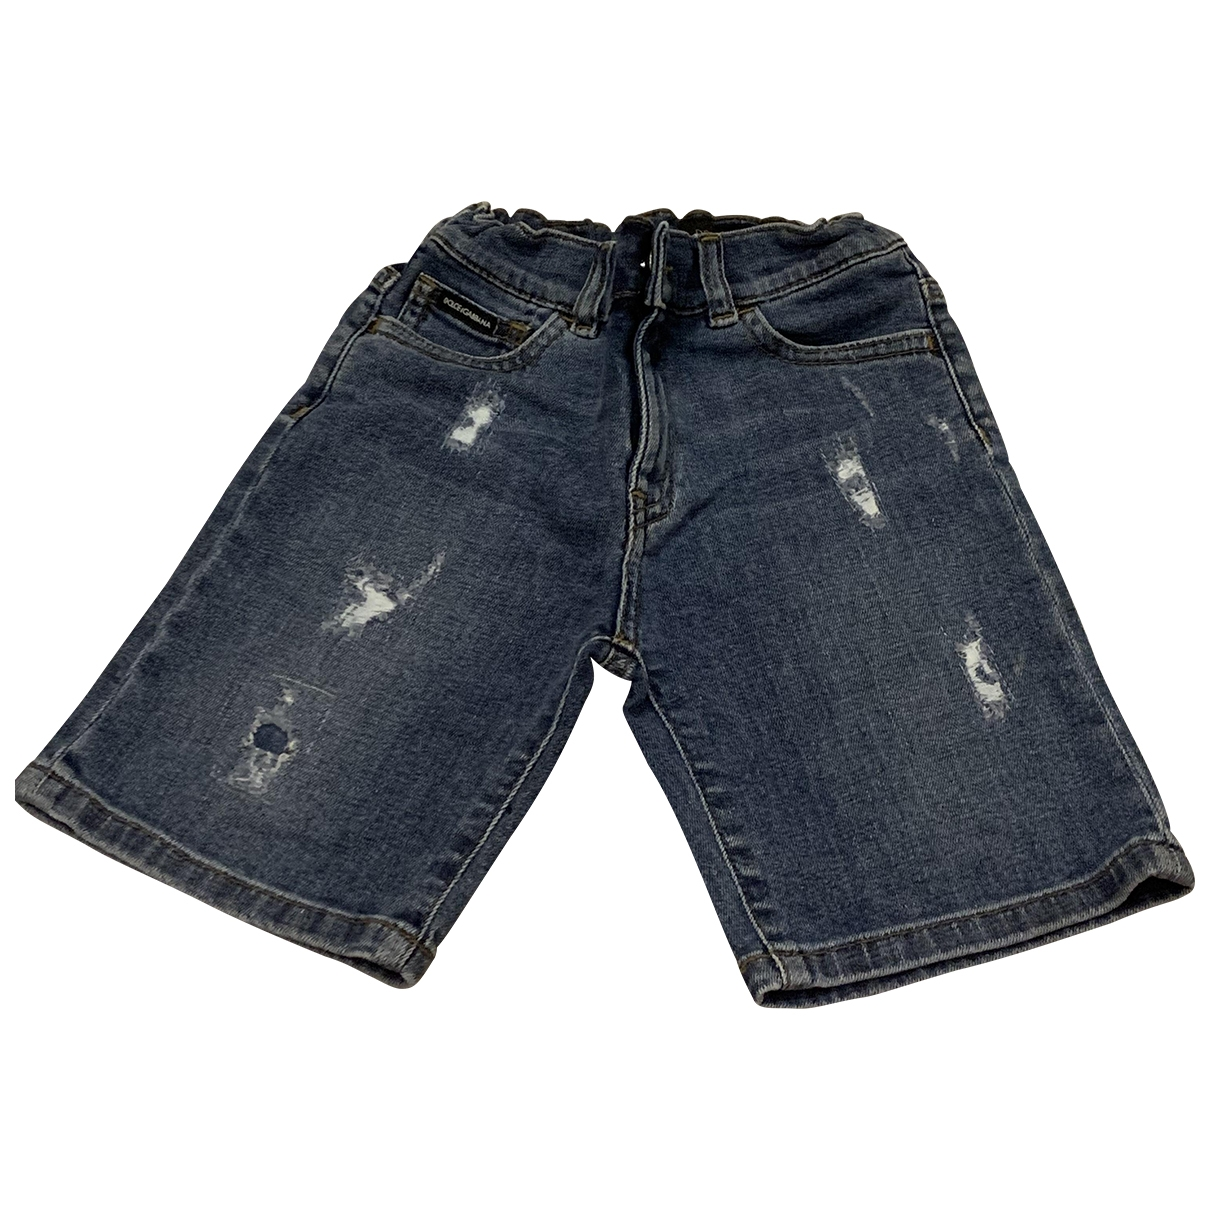 Dolce & Gabbana \N Cotton Shorts for Kids 4 years - up to 102cm FR